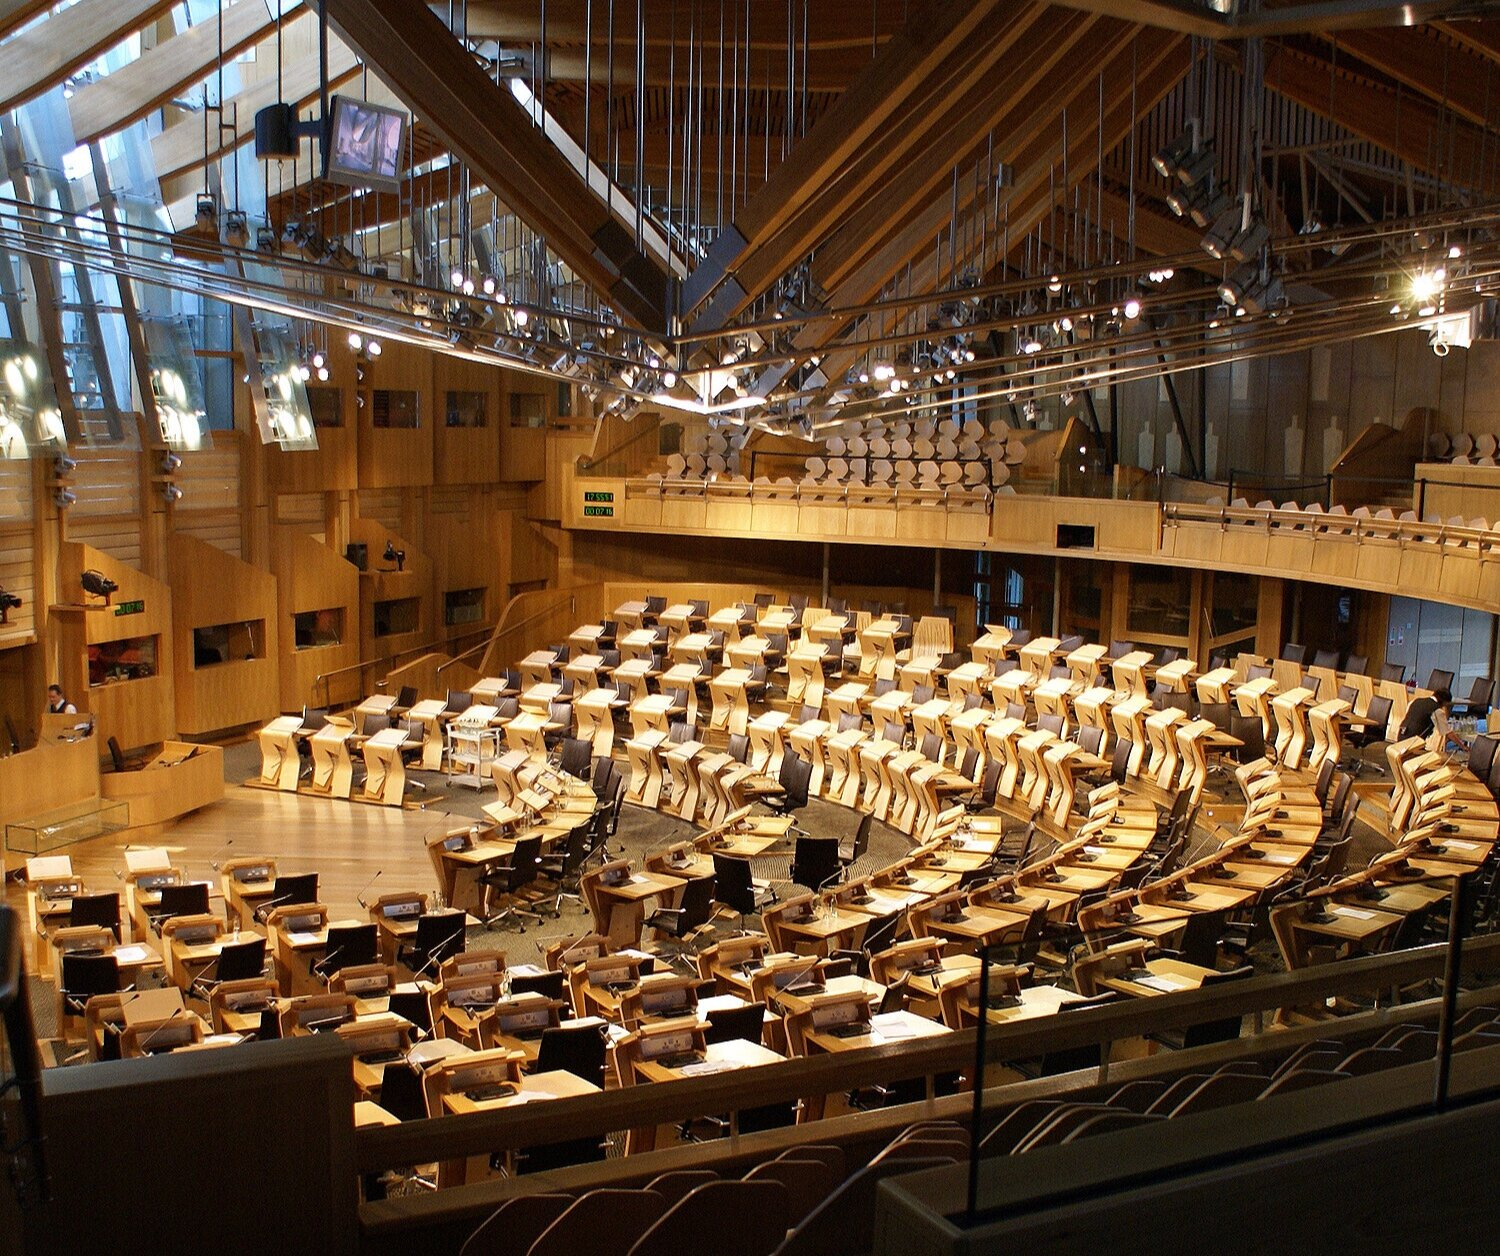 Image of the debating chamber at the Scottish Parliament.